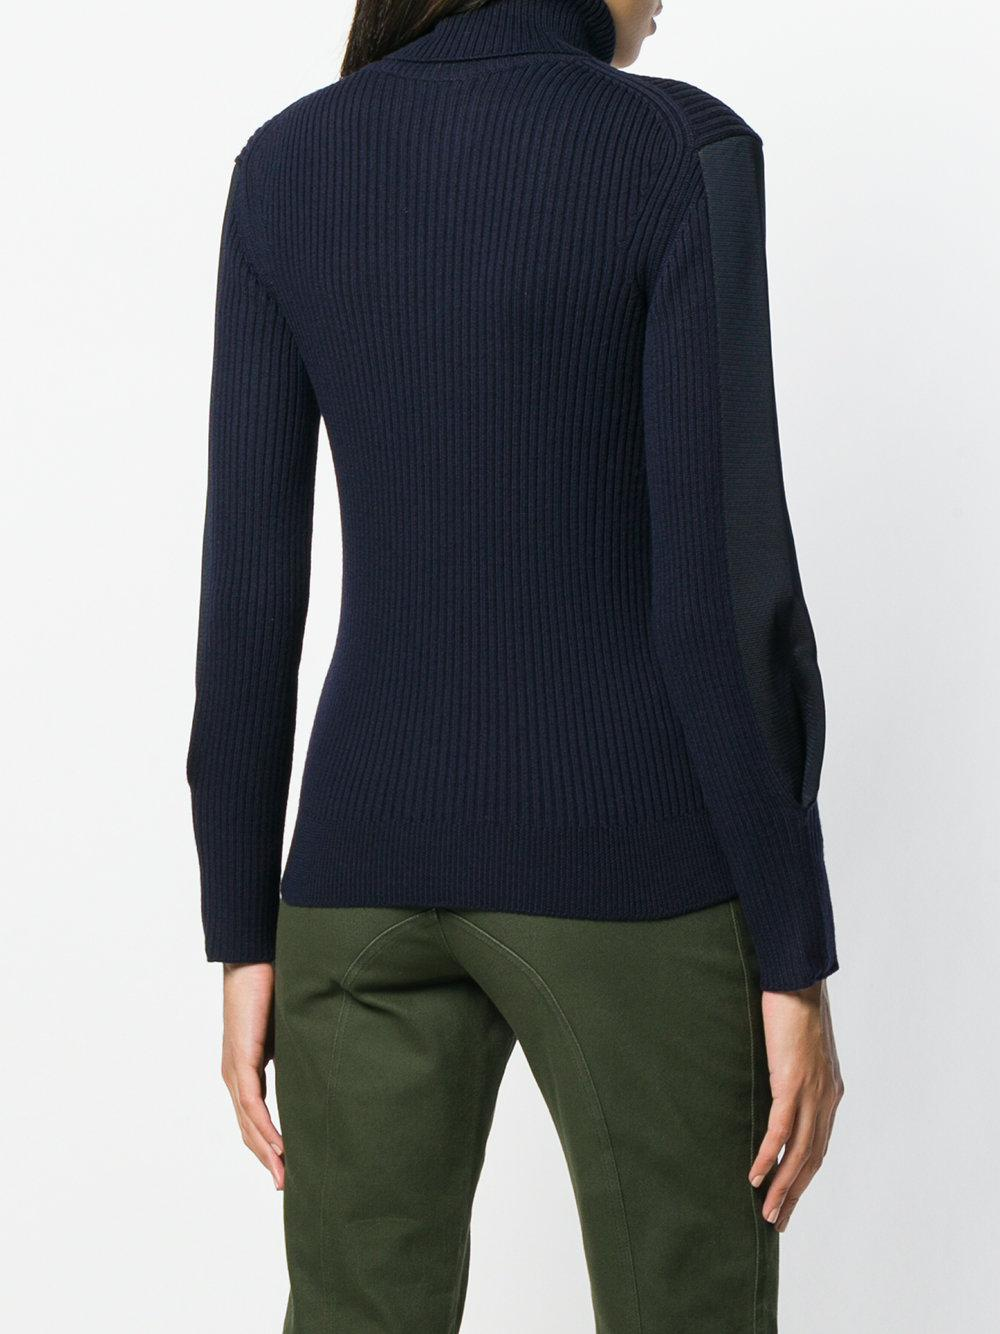 Chloé Wool Roll-neck Fitted Sweater in Blue